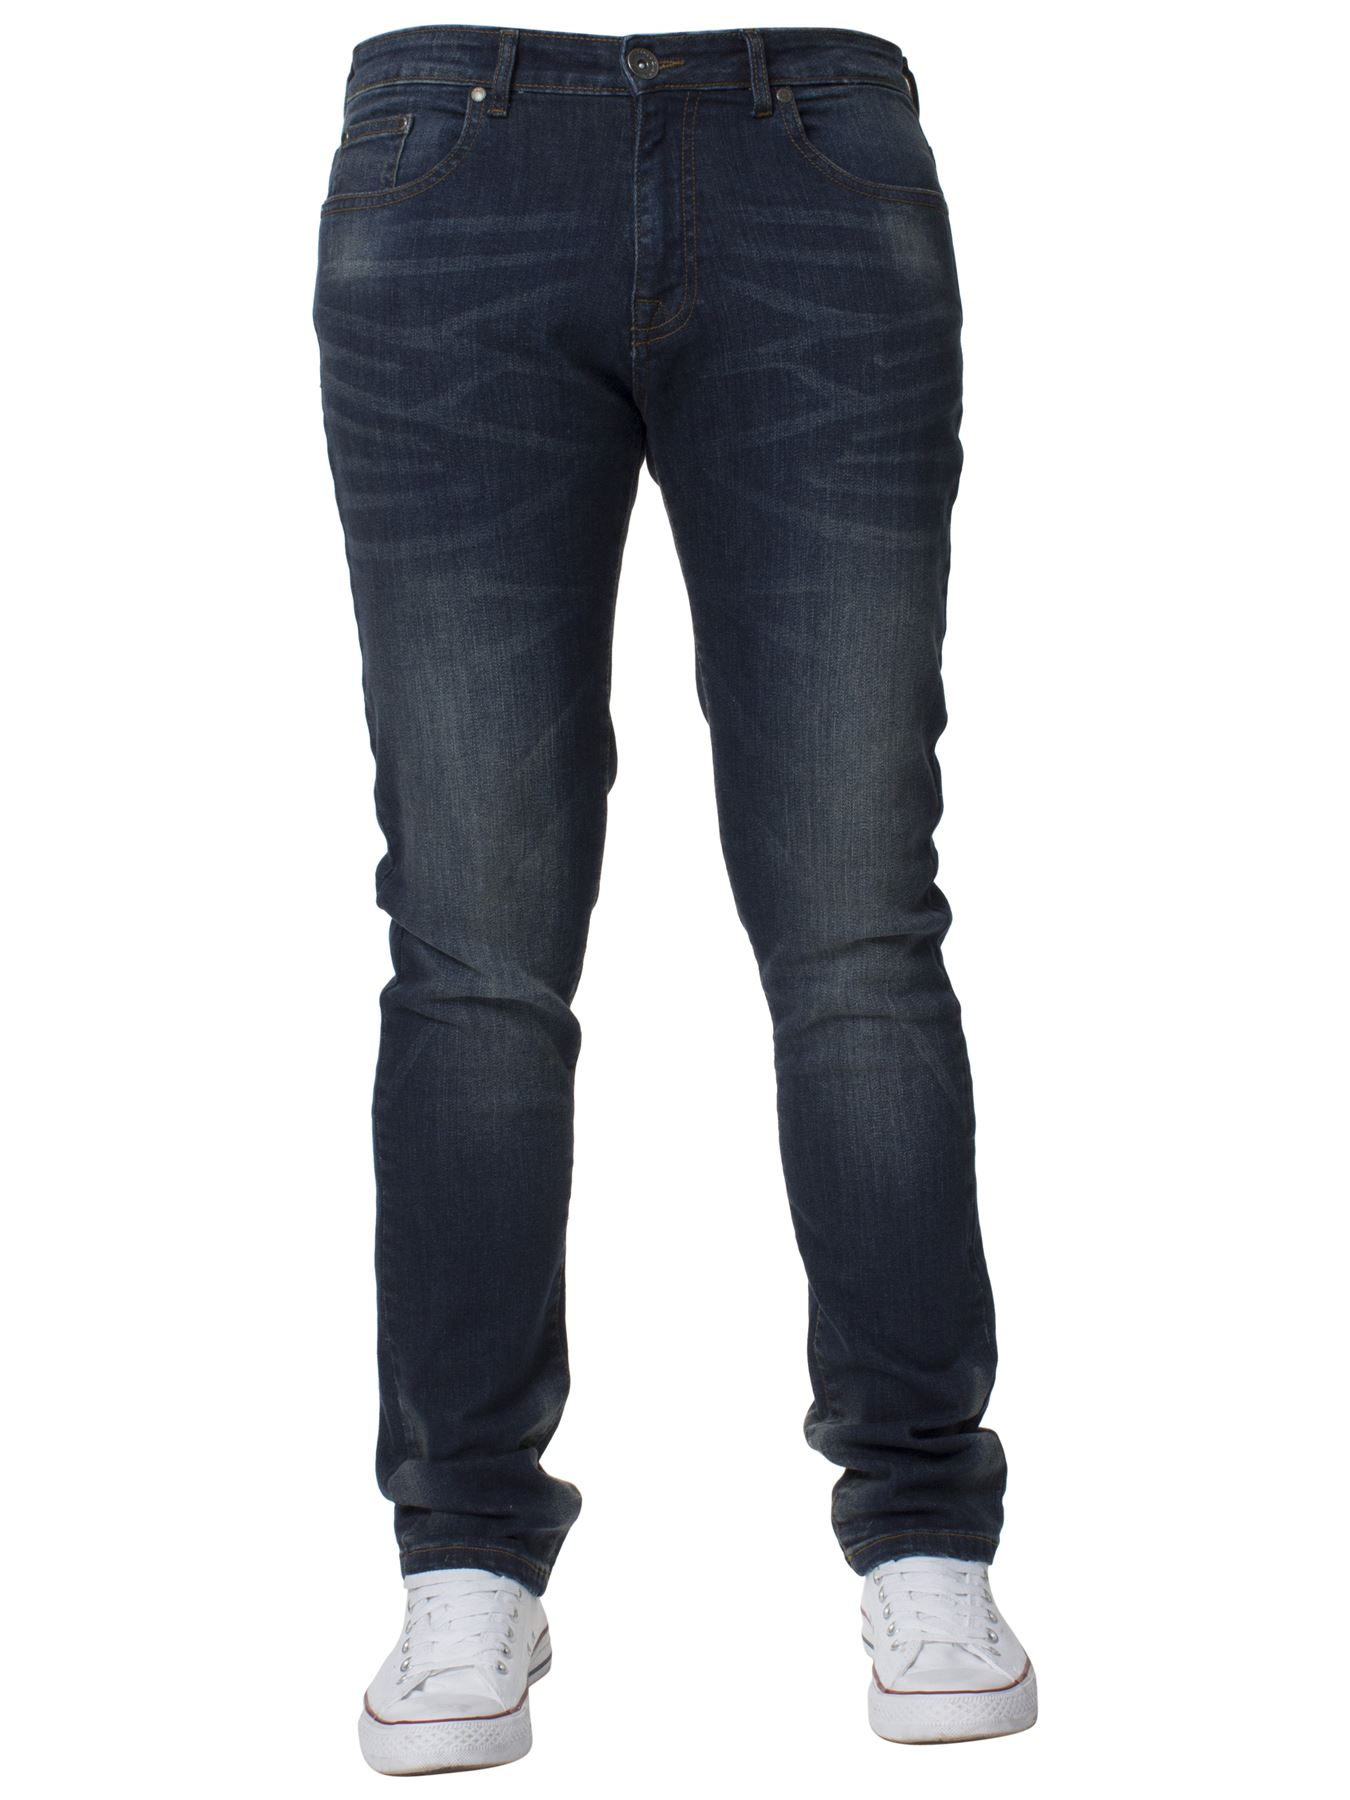 Mens-Skinny-Stretch-Jeans-Slim-Fit-Flex-Denim-Trousers-Pants-King-Sizes-by-Kruze thumbnail 16